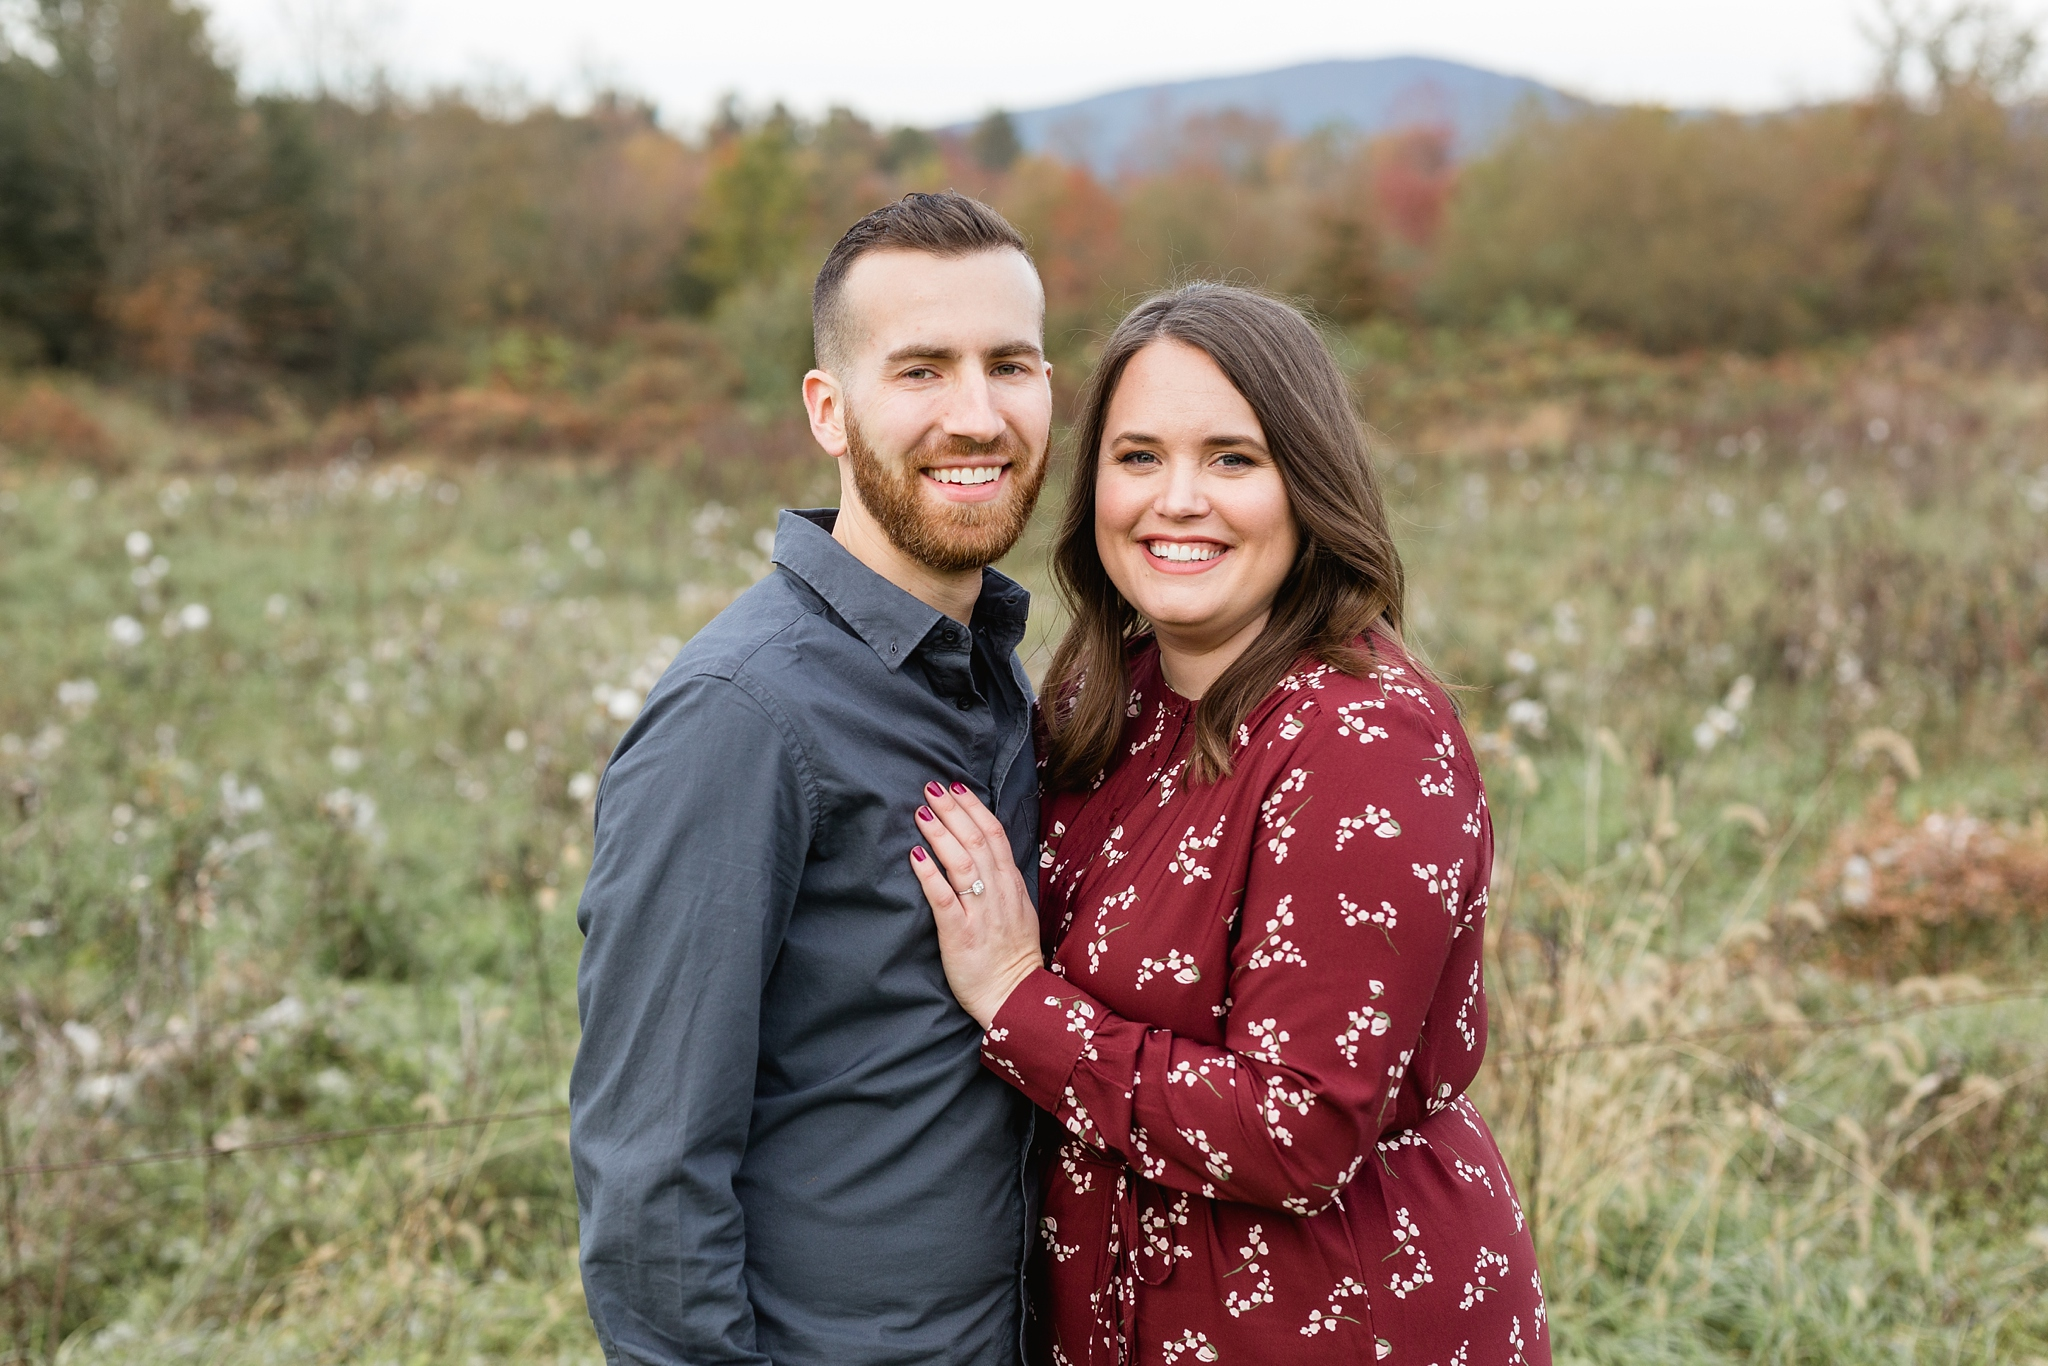 middle_creek_wildlife_engagement_session_02.jpg